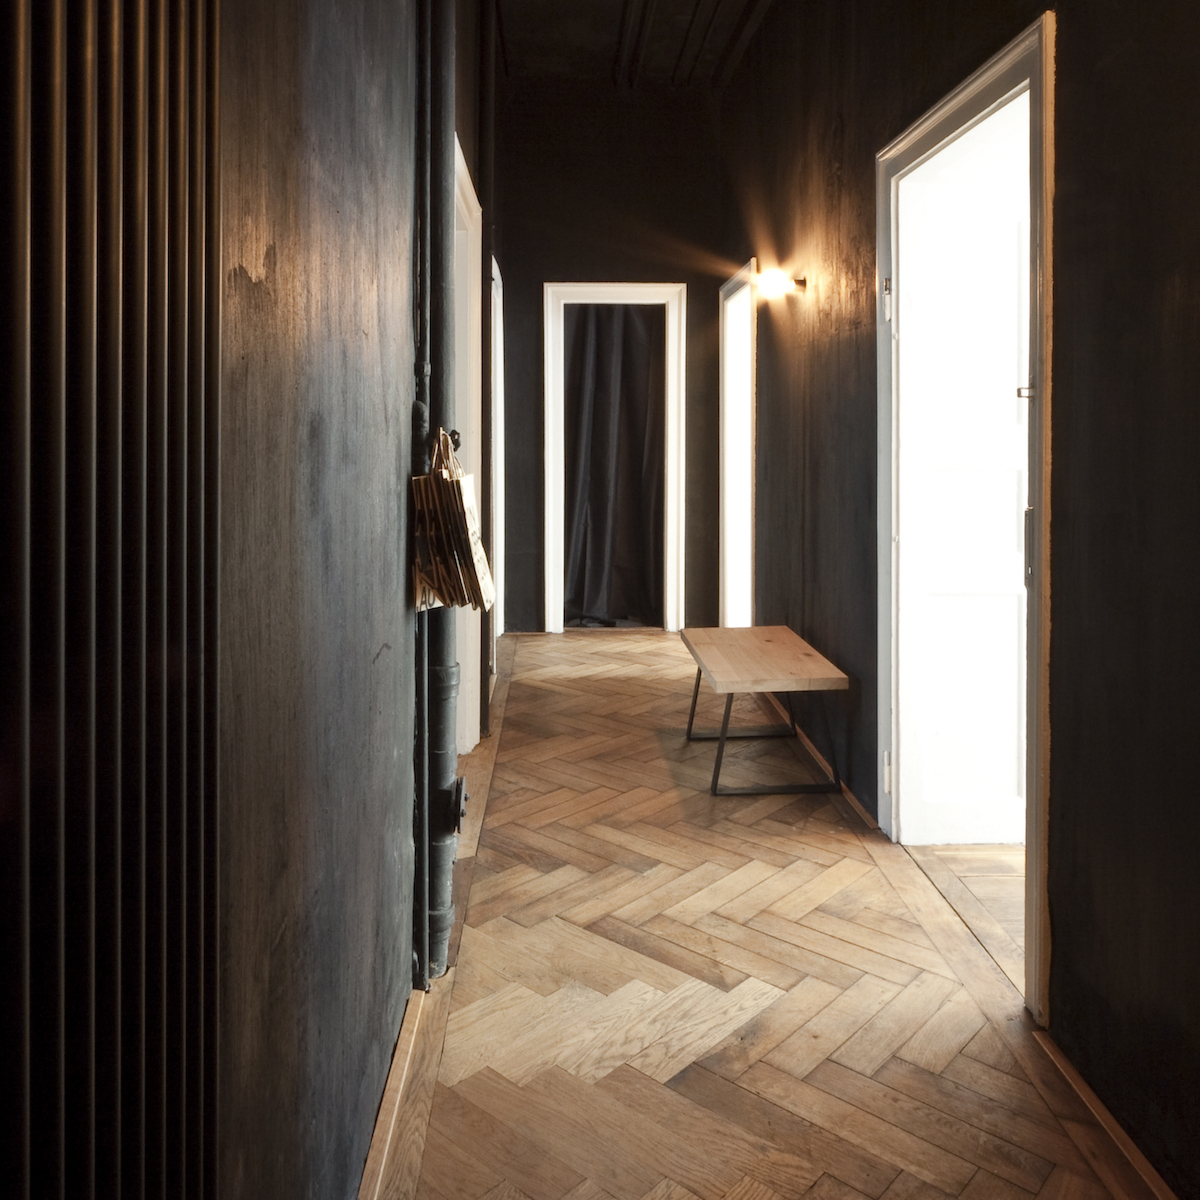 dressler salon munich a hairdresser located in schwabing munich creme guides. Black Bedroom Furniture Sets. Home Design Ideas